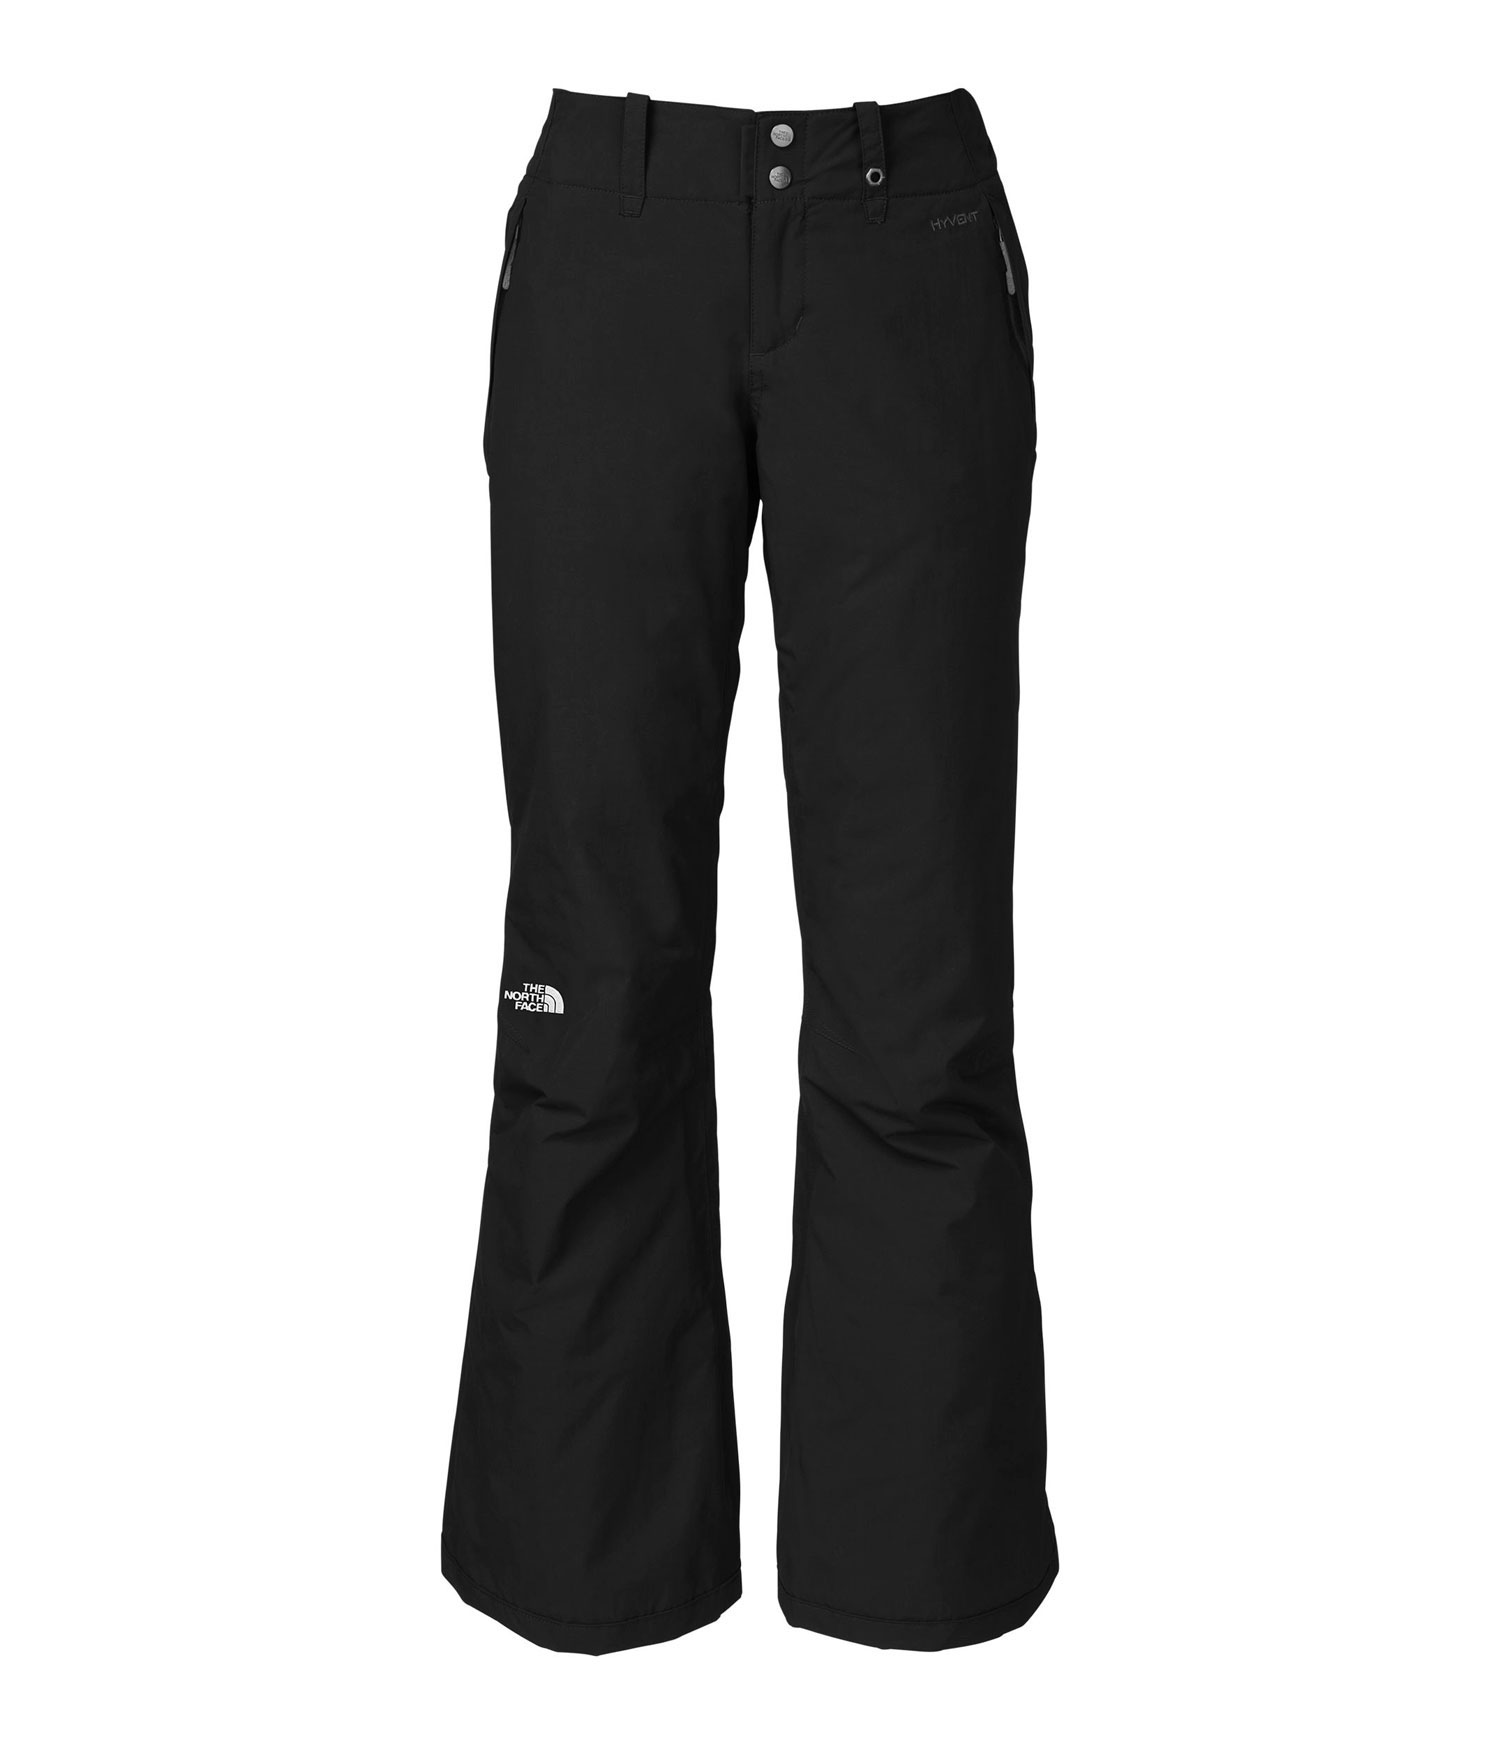 "Ski A waterproof, breathable pant that's designed for no-nonsense performance on the mountain; Heatseeker insulation and fully taped seams keep you warm and dry on the lift. Key Features of The North Face Sally Ski Pants: Avg Weight: 600 g (21.16 oz) Inseam: 32"" Fabric: shell: HyVent 2L plain weave Lining: taffeta Insulation: 60 g Heatseeker Handwarmer zip pockets Back pockets Articulated knees StretchVent gaiter with gripper elastic Reinforced cuffs Chimney Venting system Snap gusset hem - $83.95"